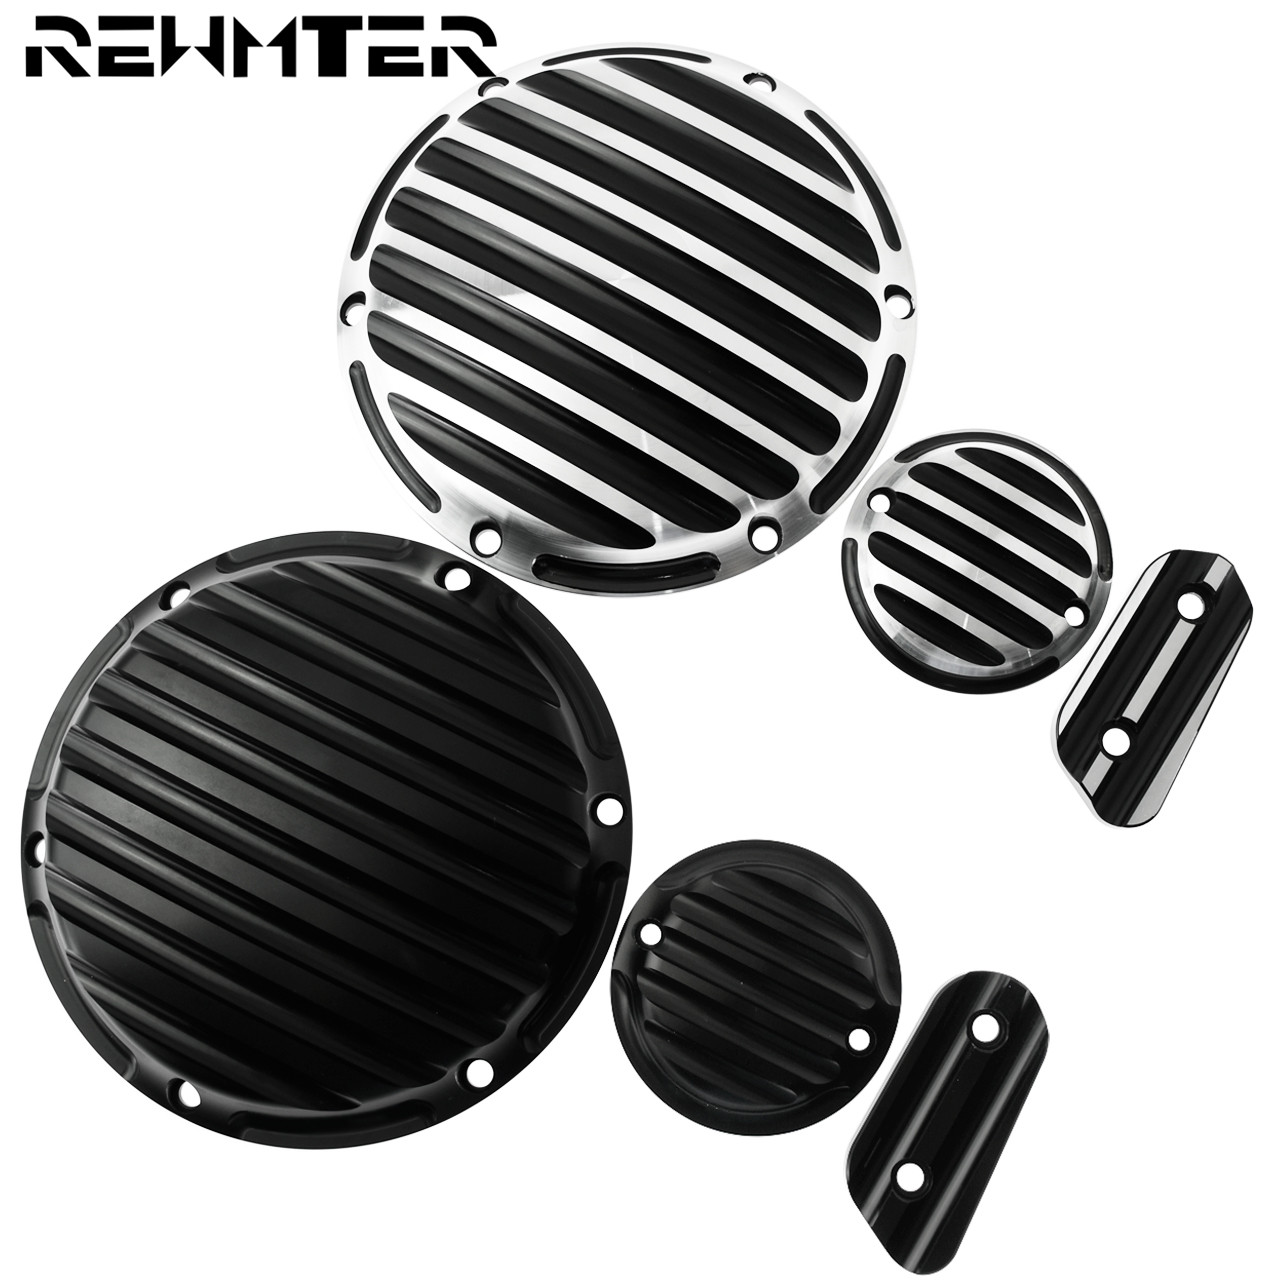 1 Set/Pc Derby Cover Timing Timer Inspection CNC Deep Cut Motorcycle  Cap For Harley Sportster 883 1200 XL, With Logo